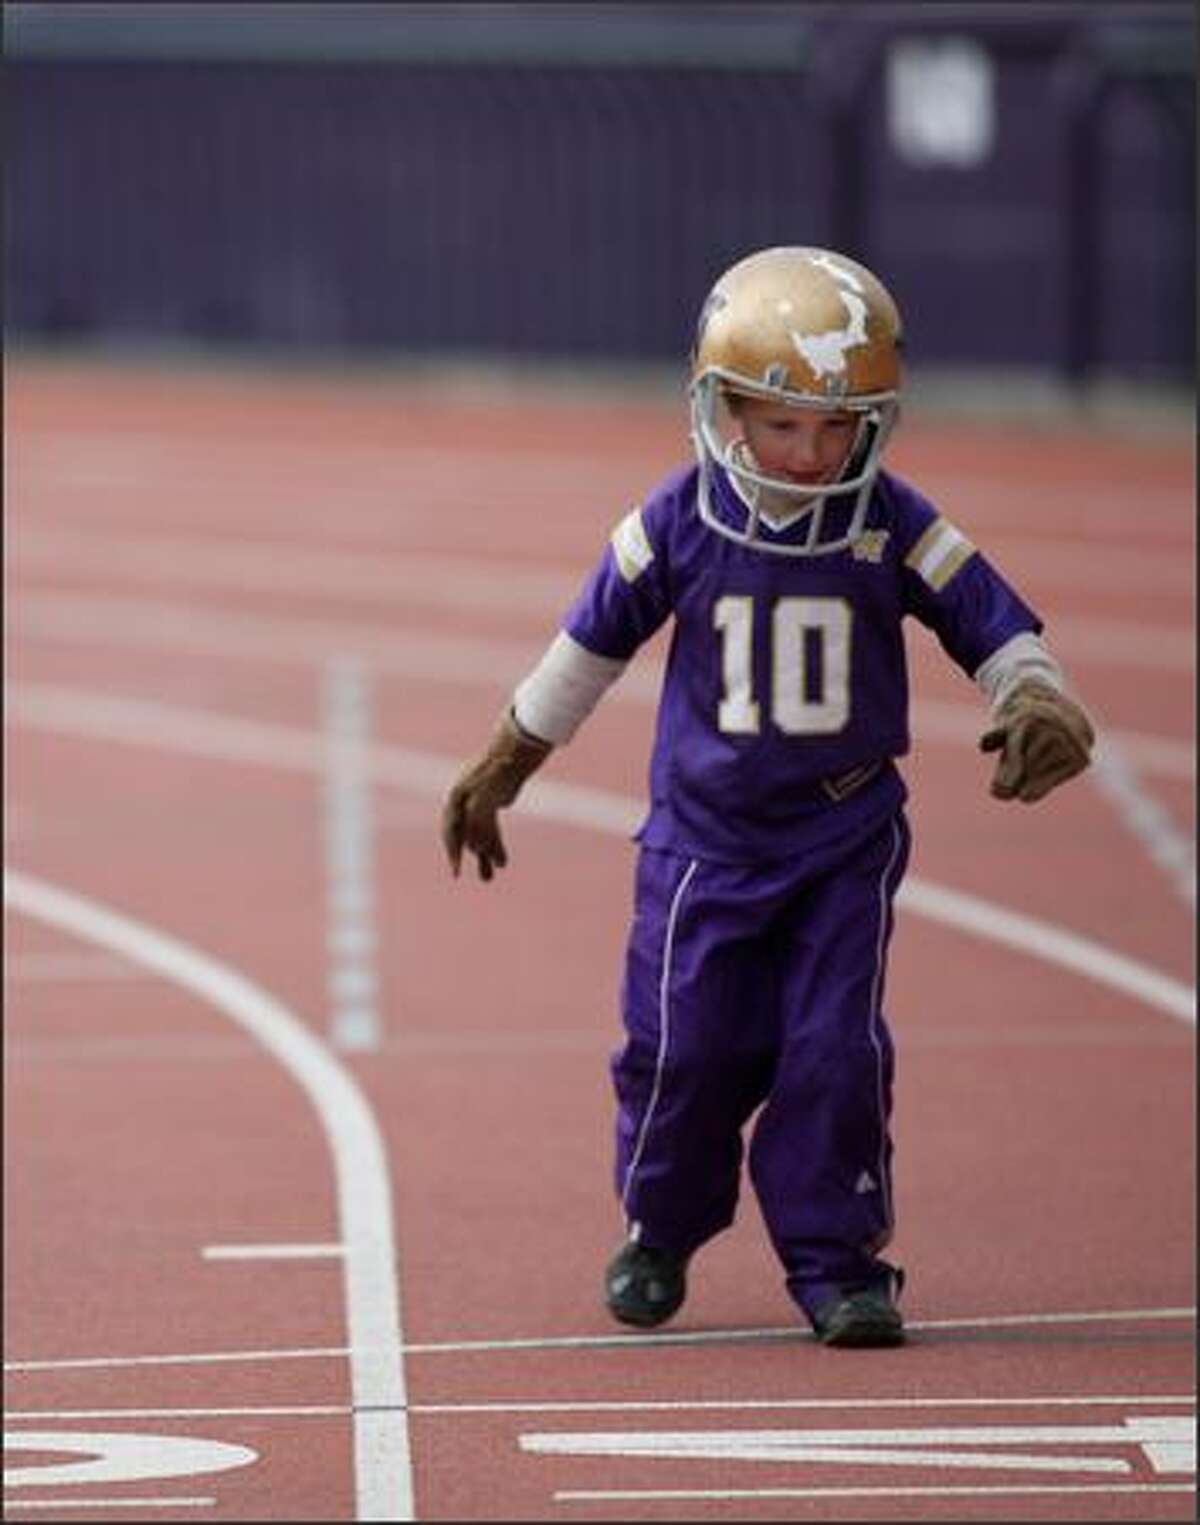 Axel Johnson, son of Darin Johnson, plays around on the track while the Huskies practice.